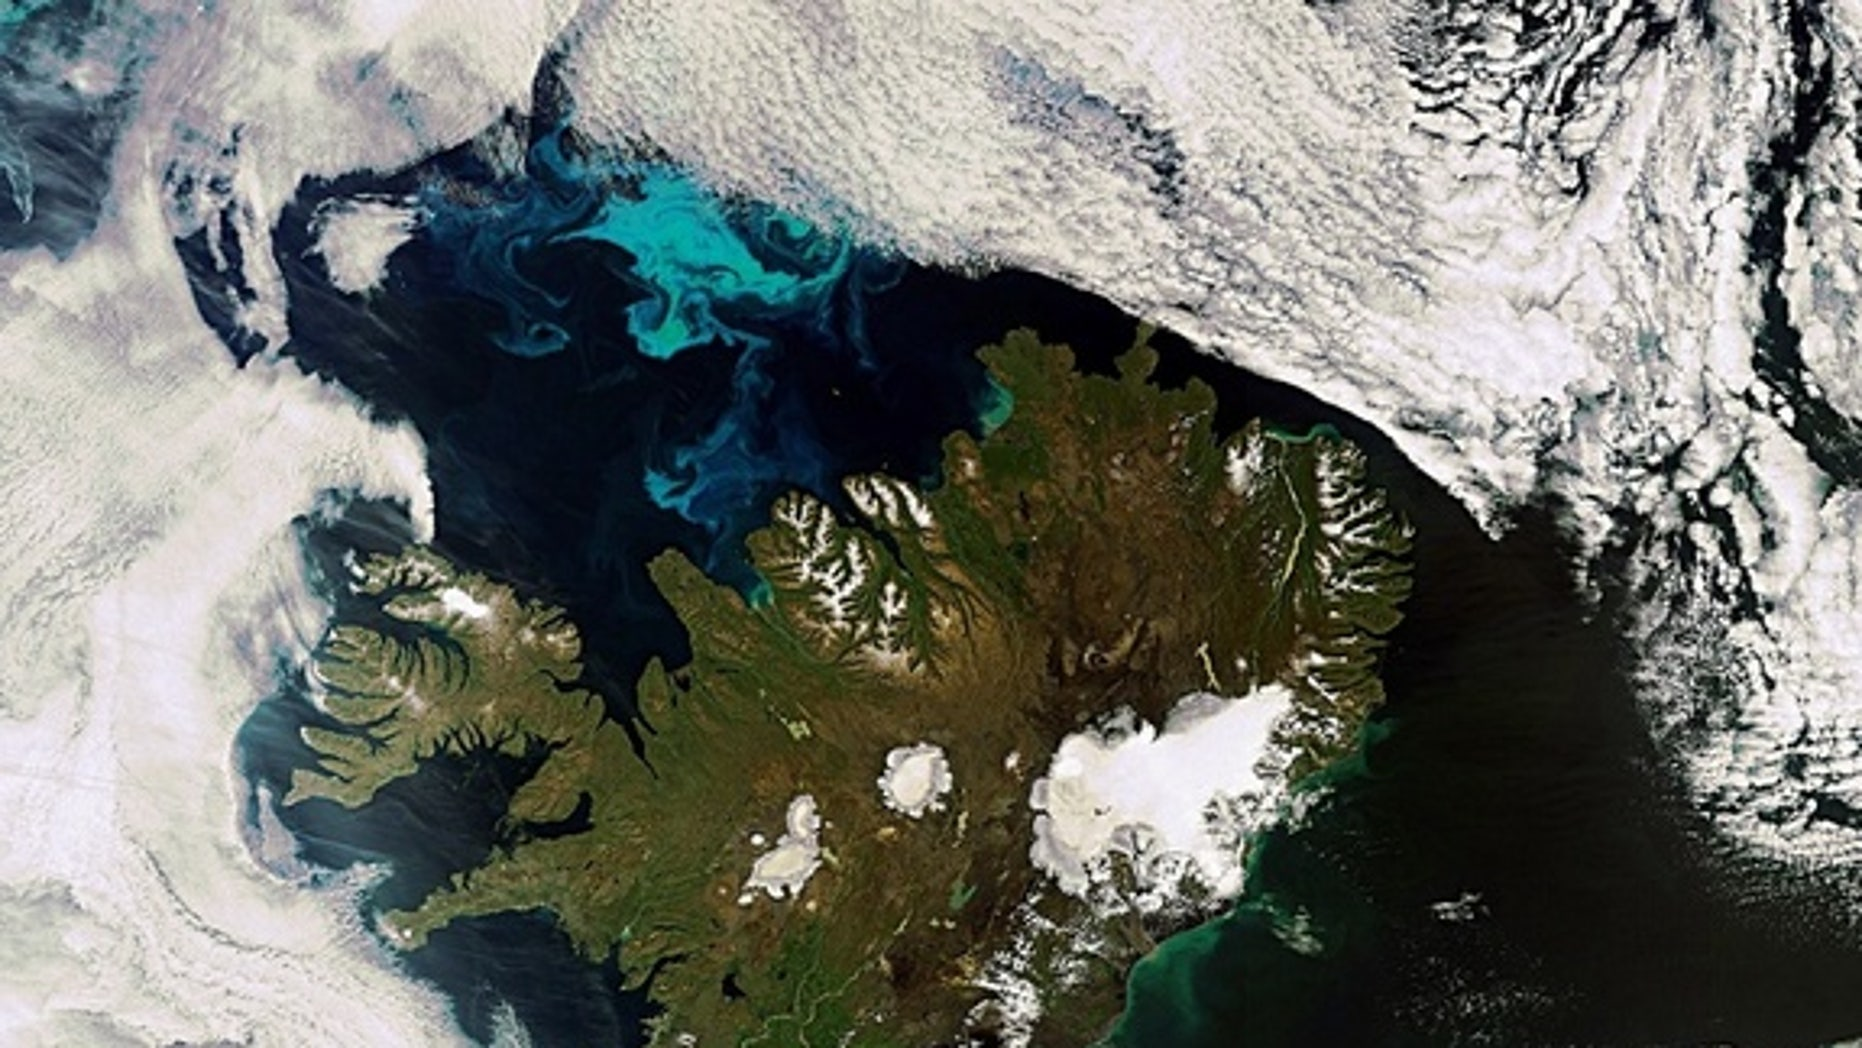 This Envisat image shows us a very rare, cloud-free view of Iceland. This image was acquired on July 21, 2010.